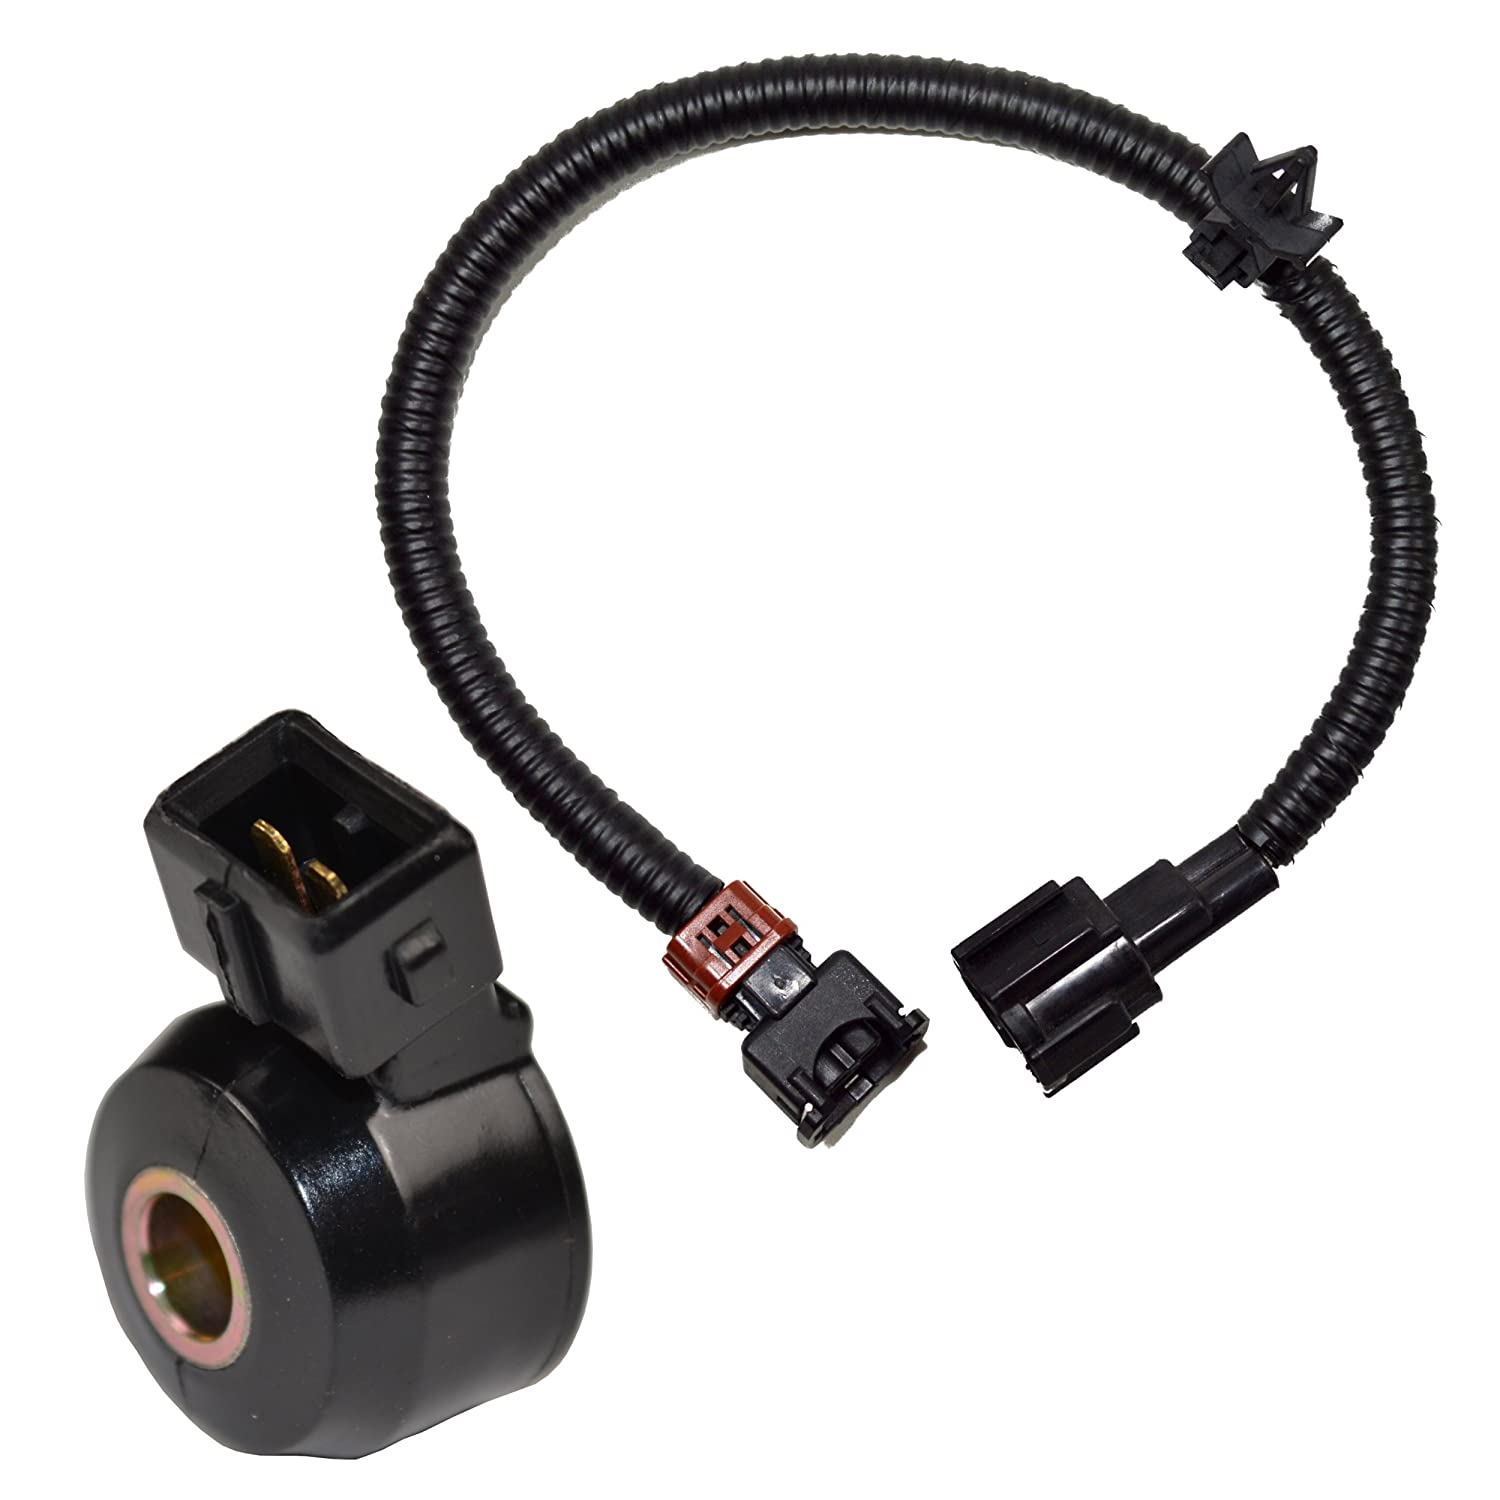 813wwbBFvfL._SL1500_ amazon com hqrp knock sensor w wiring harness for nissan maxima 2000 nissan maxima engine wiring harness at alyssarenee.co